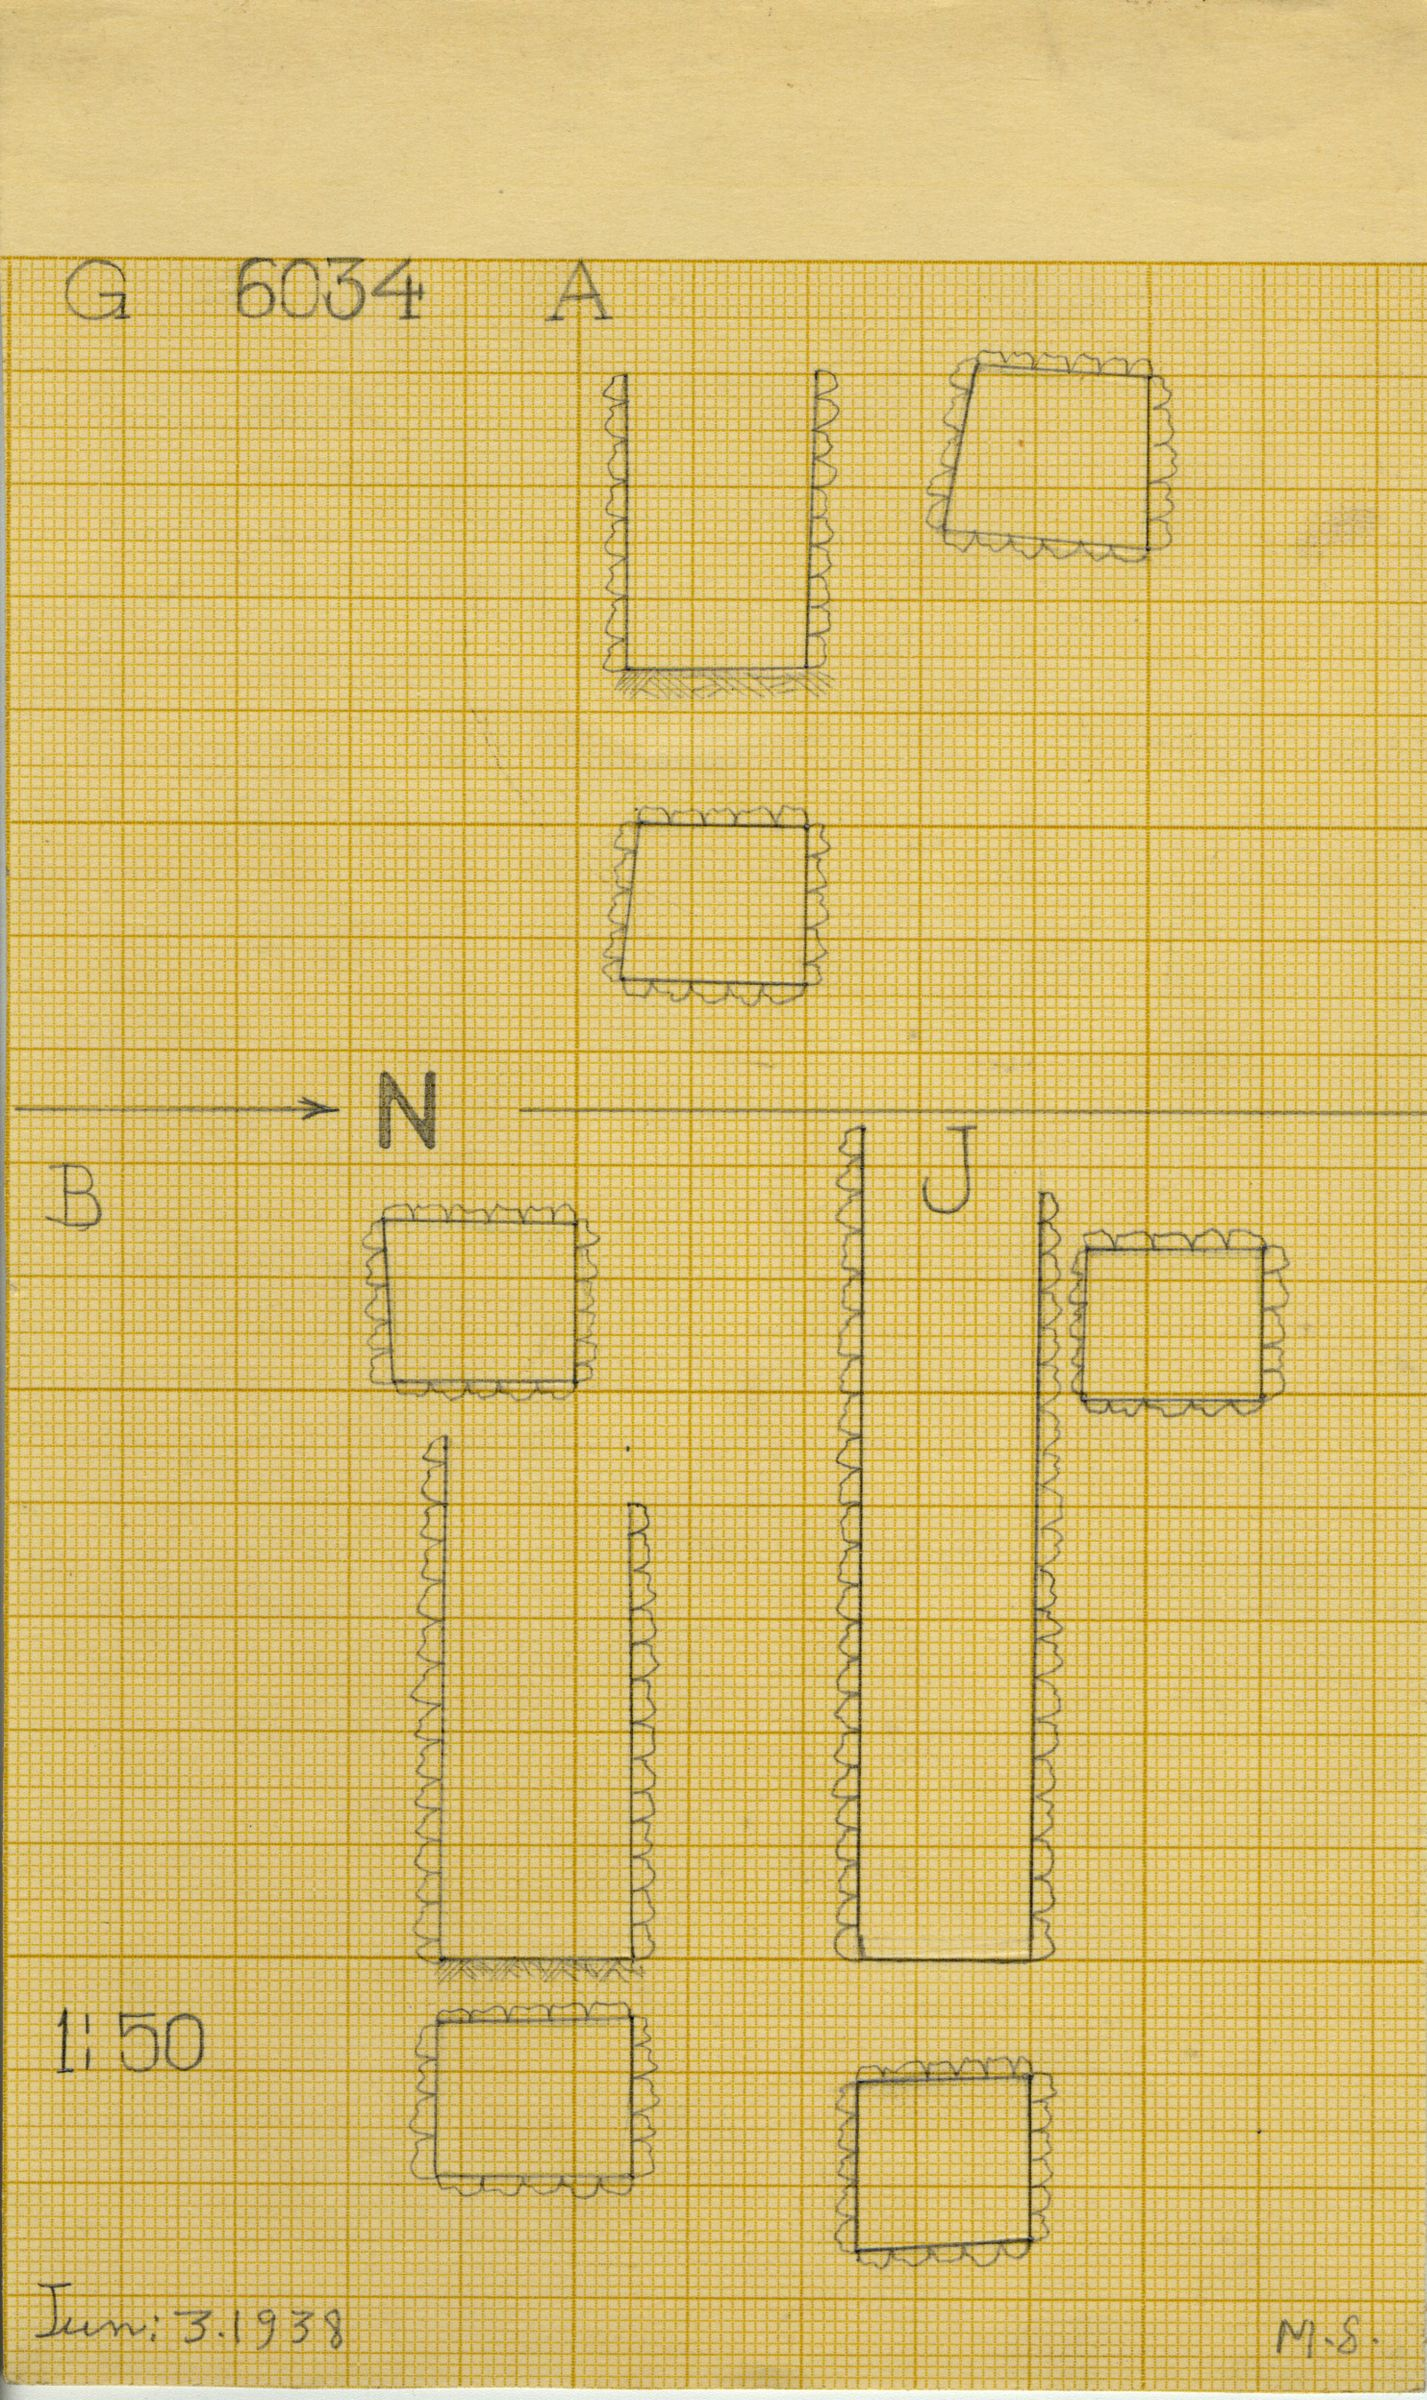 Maps and plans: G 6034, Shaft A, B, J